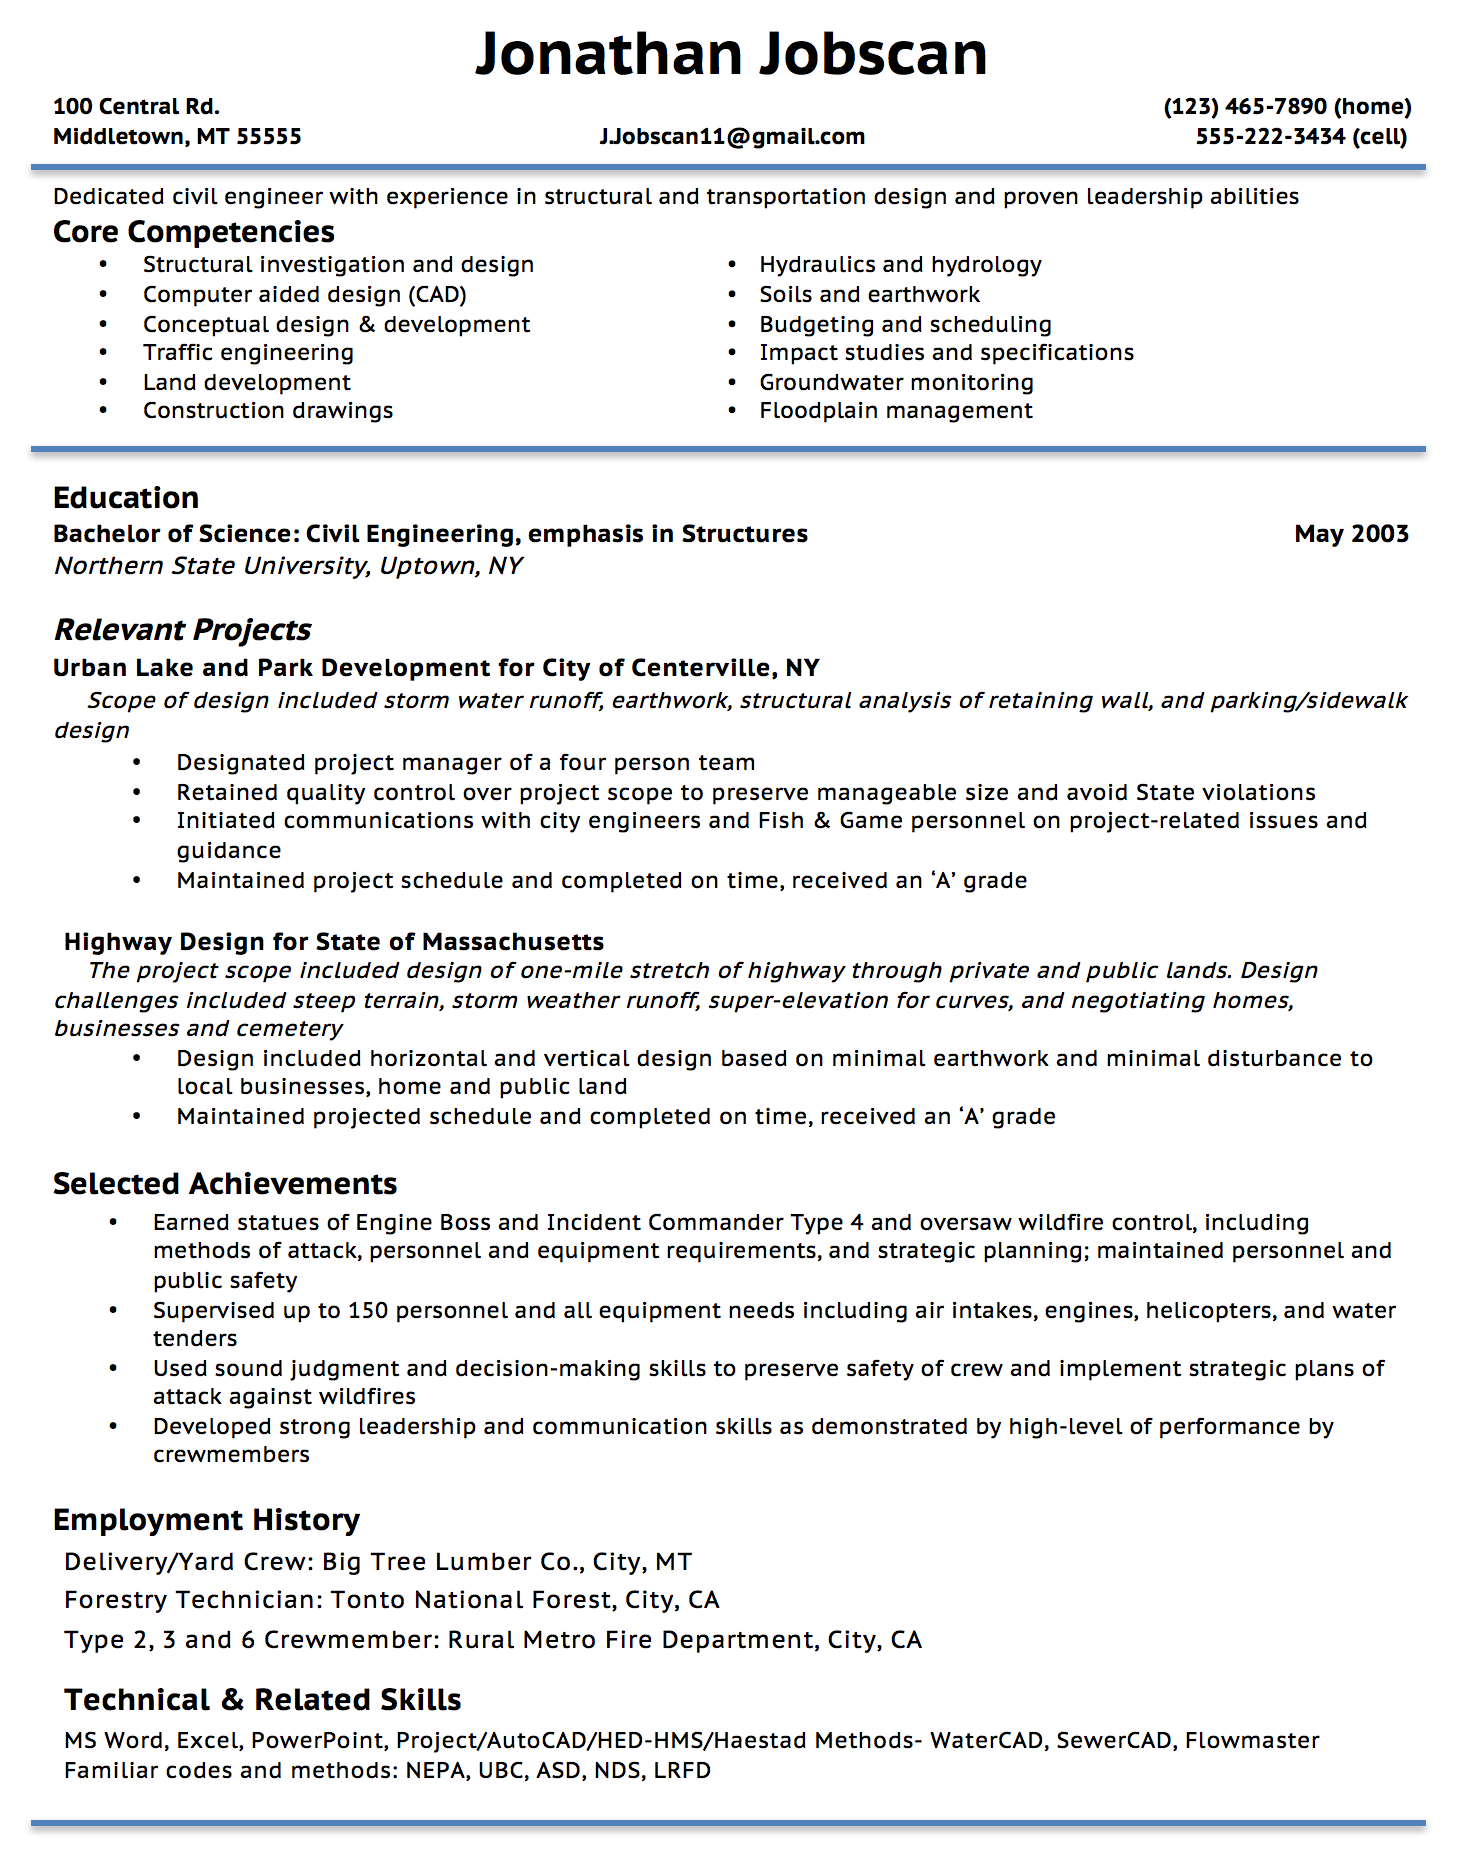 Opposenewapstandardsus  Marvelous Resume Writing Guide  Jobscan With Extraordinary Example Of A Functional Resume Format With Delectable Resume List Of Skills Also Helpdesk Resume In Addition Leadership Experience Resume And Sample Of A Good Resume As Well As Free Professional Resume Template Additionally Resume For Personal Trainer From Jobscanco With Opposenewapstandardsus  Extraordinary Resume Writing Guide  Jobscan With Delectable Example Of A Functional Resume Format And Marvelous Resume List Of Skills Also Helpdesk Resume In Addition Leadership Experience Resume From Jobscanco